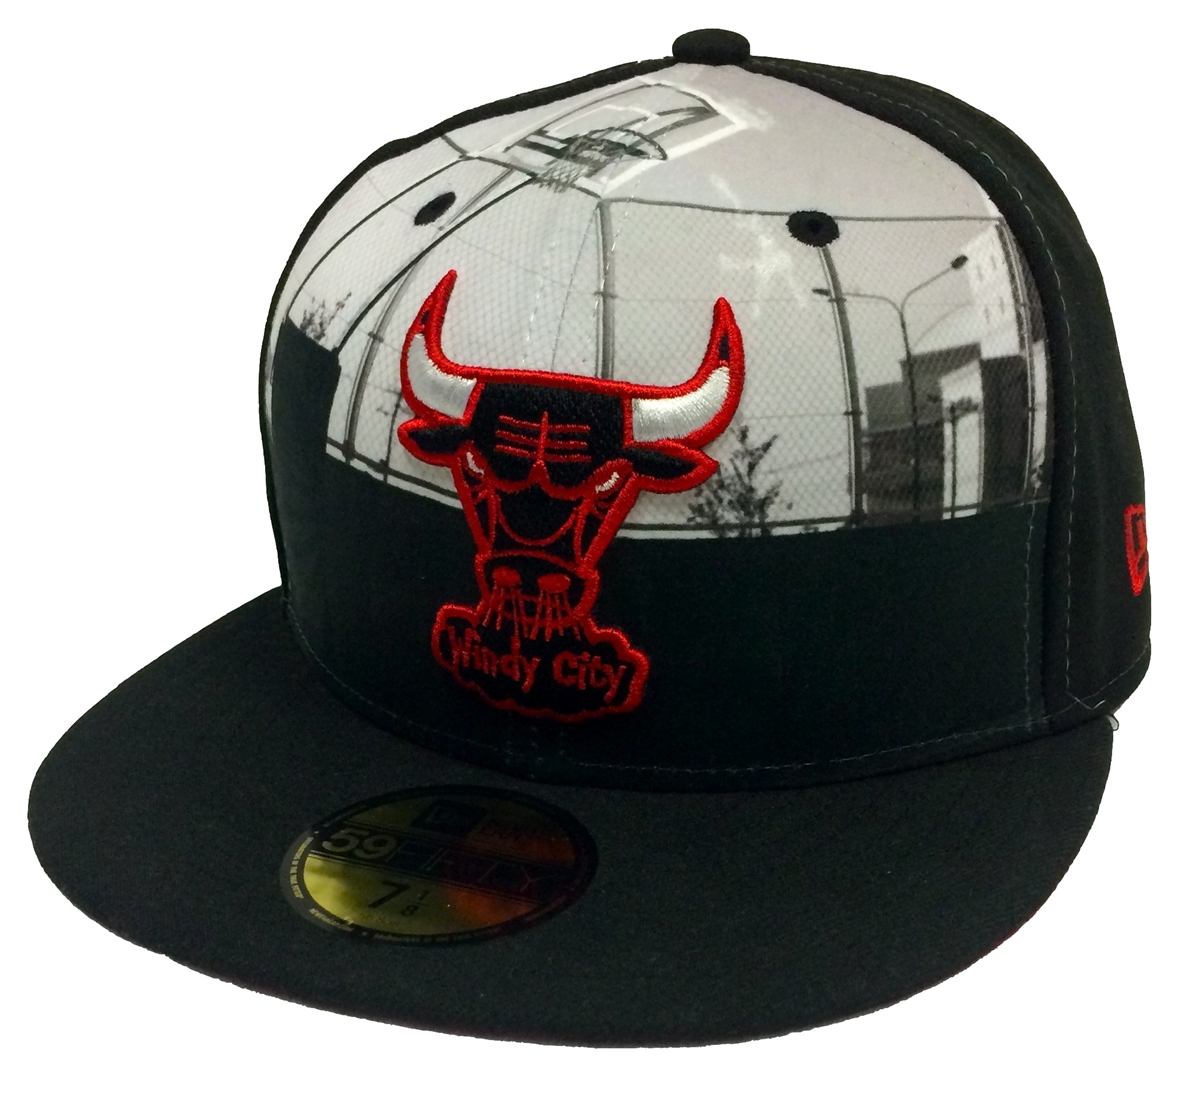 New Era 59Fifty Round D Way Chicago Bulls Black Fitted Cap bfeb36db3c8